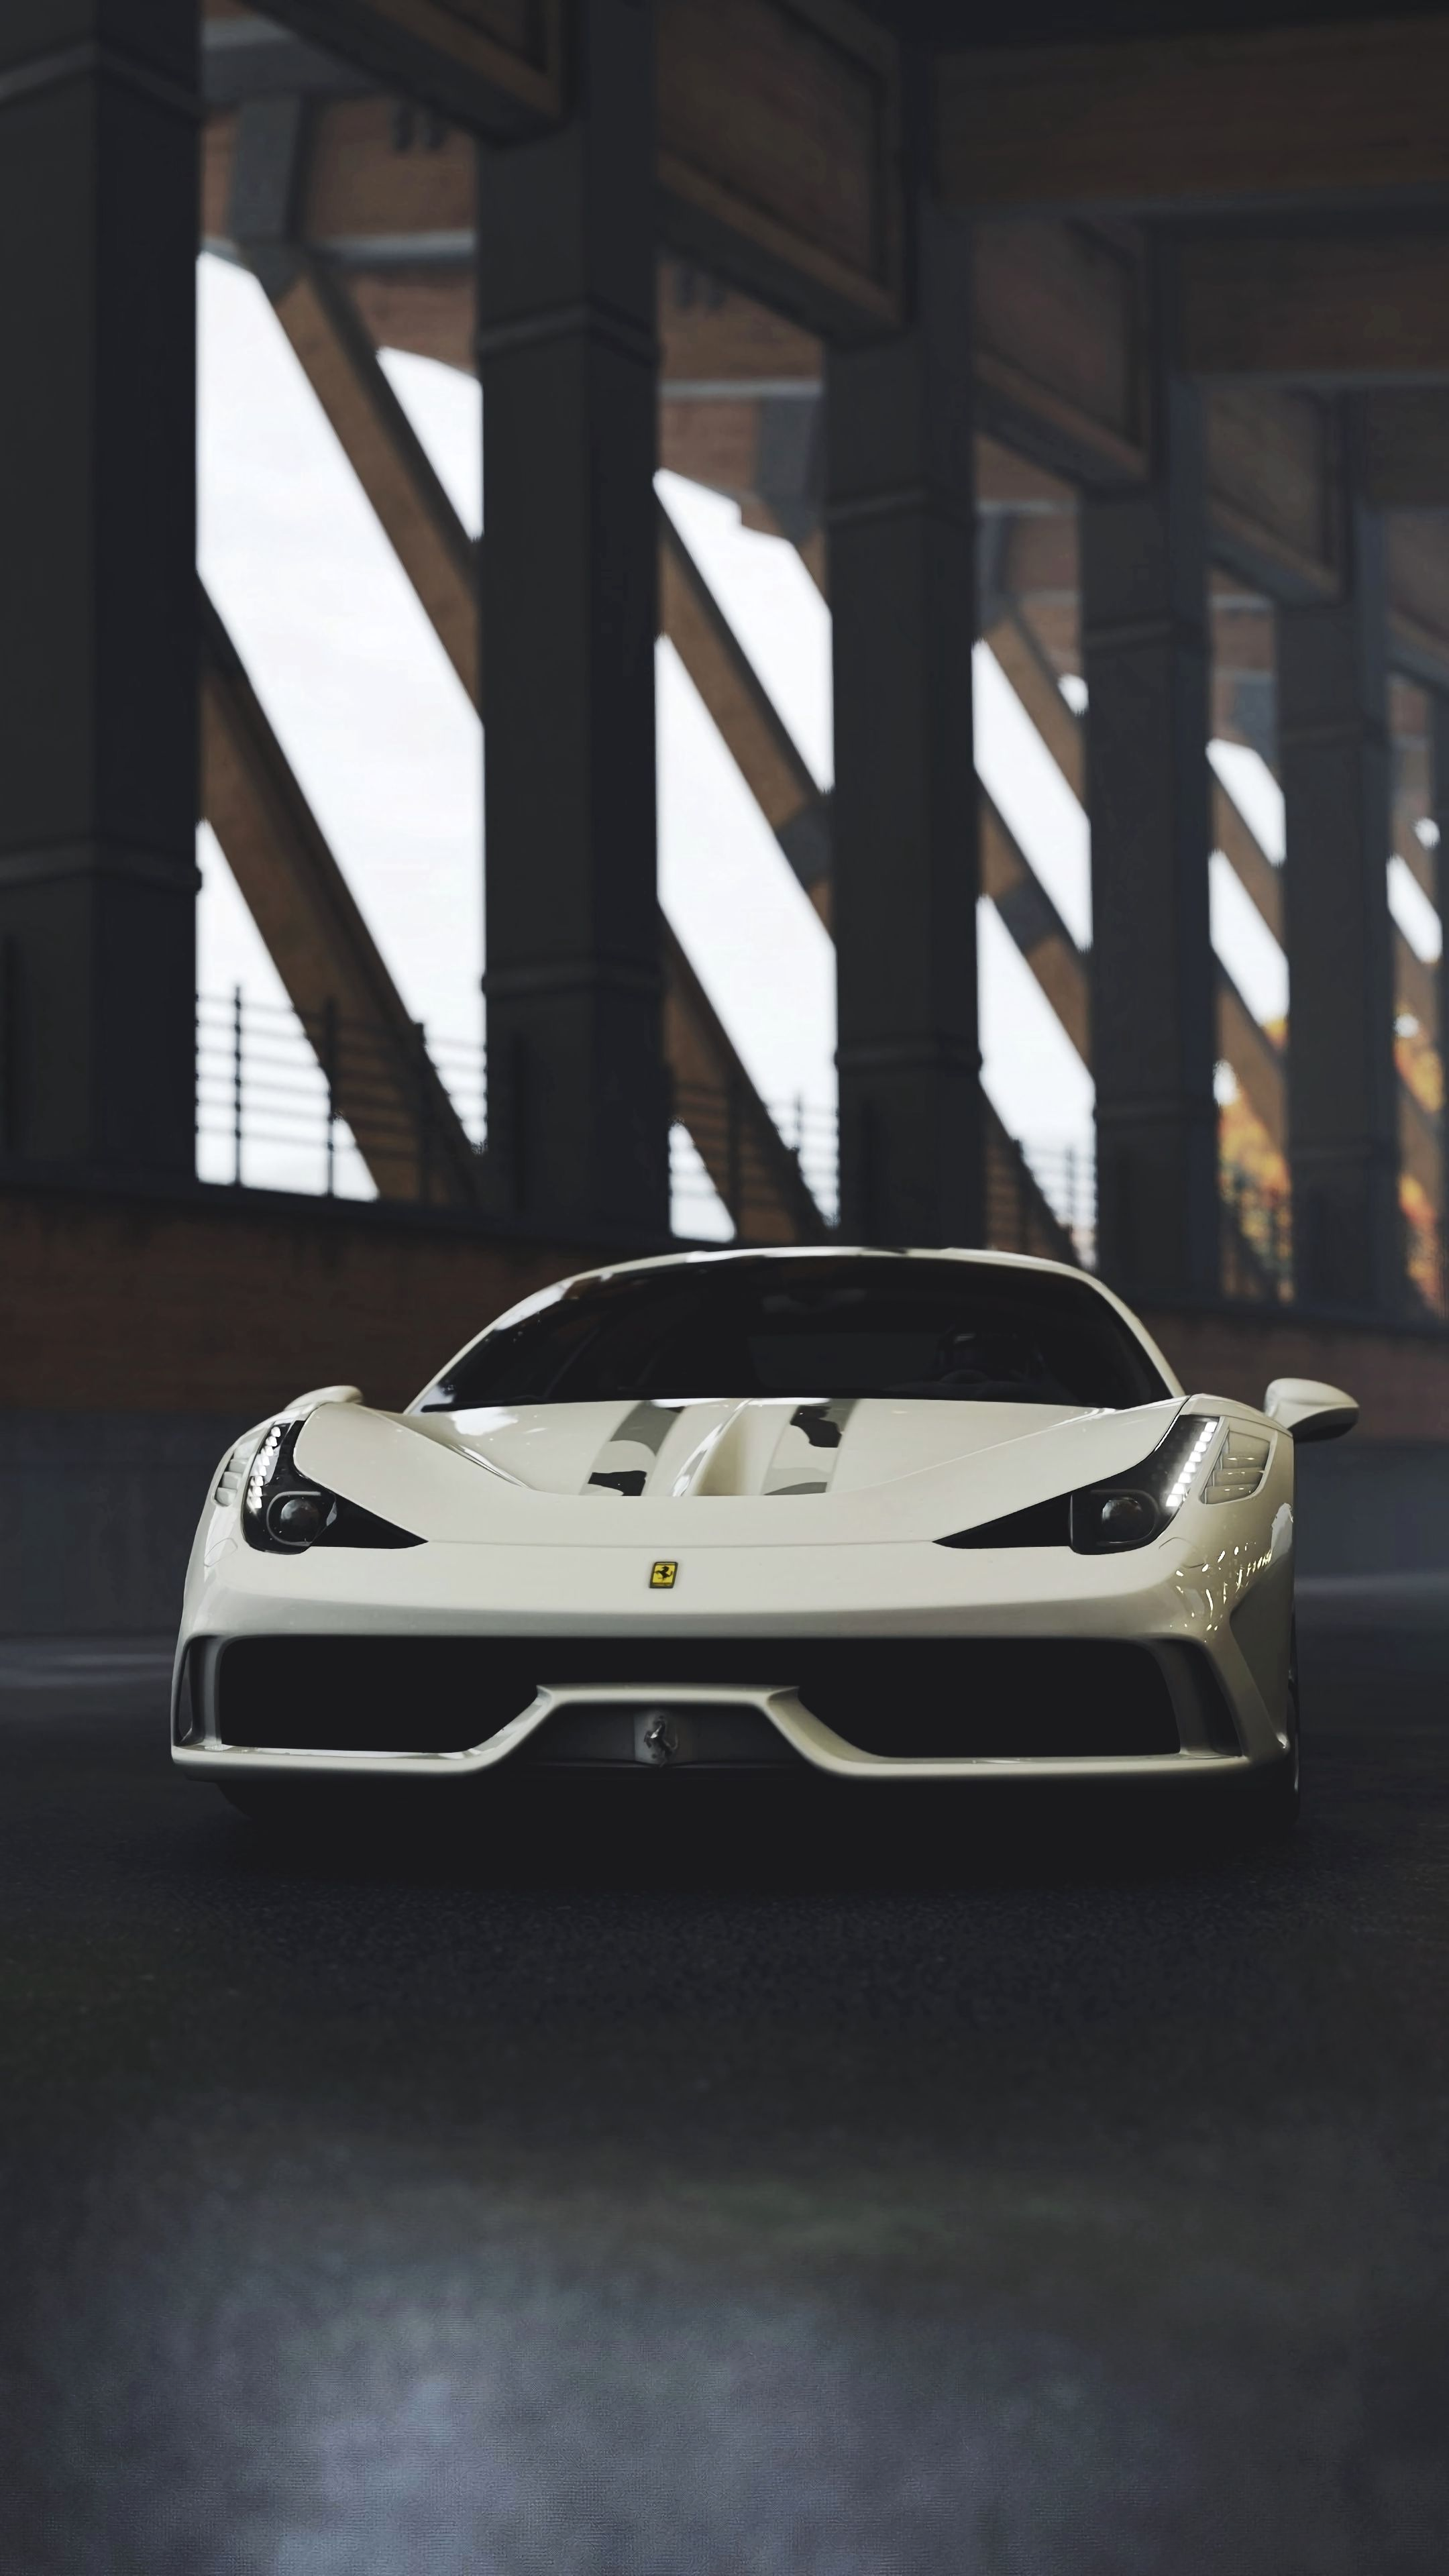 119308 Screensavers and Wallpapers Races for phone. Download Sports, Races, Ferrari, Cars, Front View, Sports Car, Ferrari 458 pictures for free